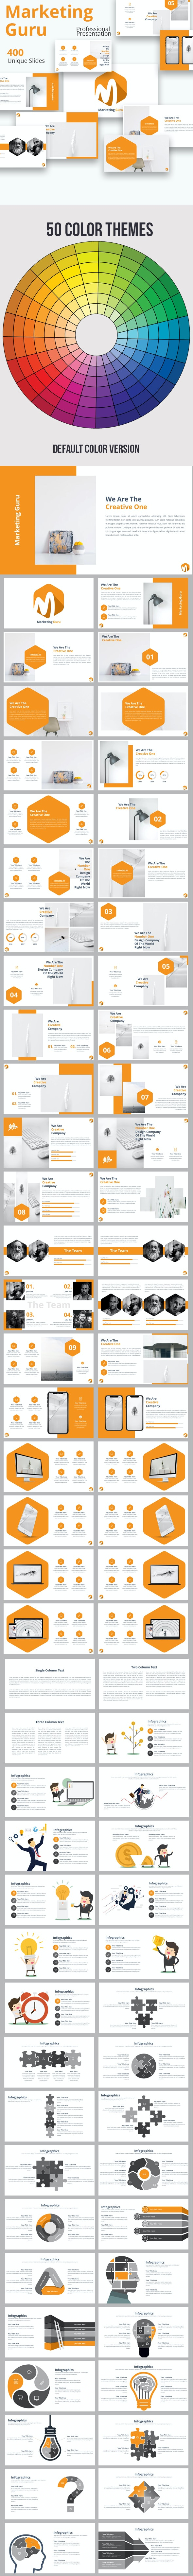 Marketing Guru Powerpoint Presentation Template - Business PowerPoint Templates